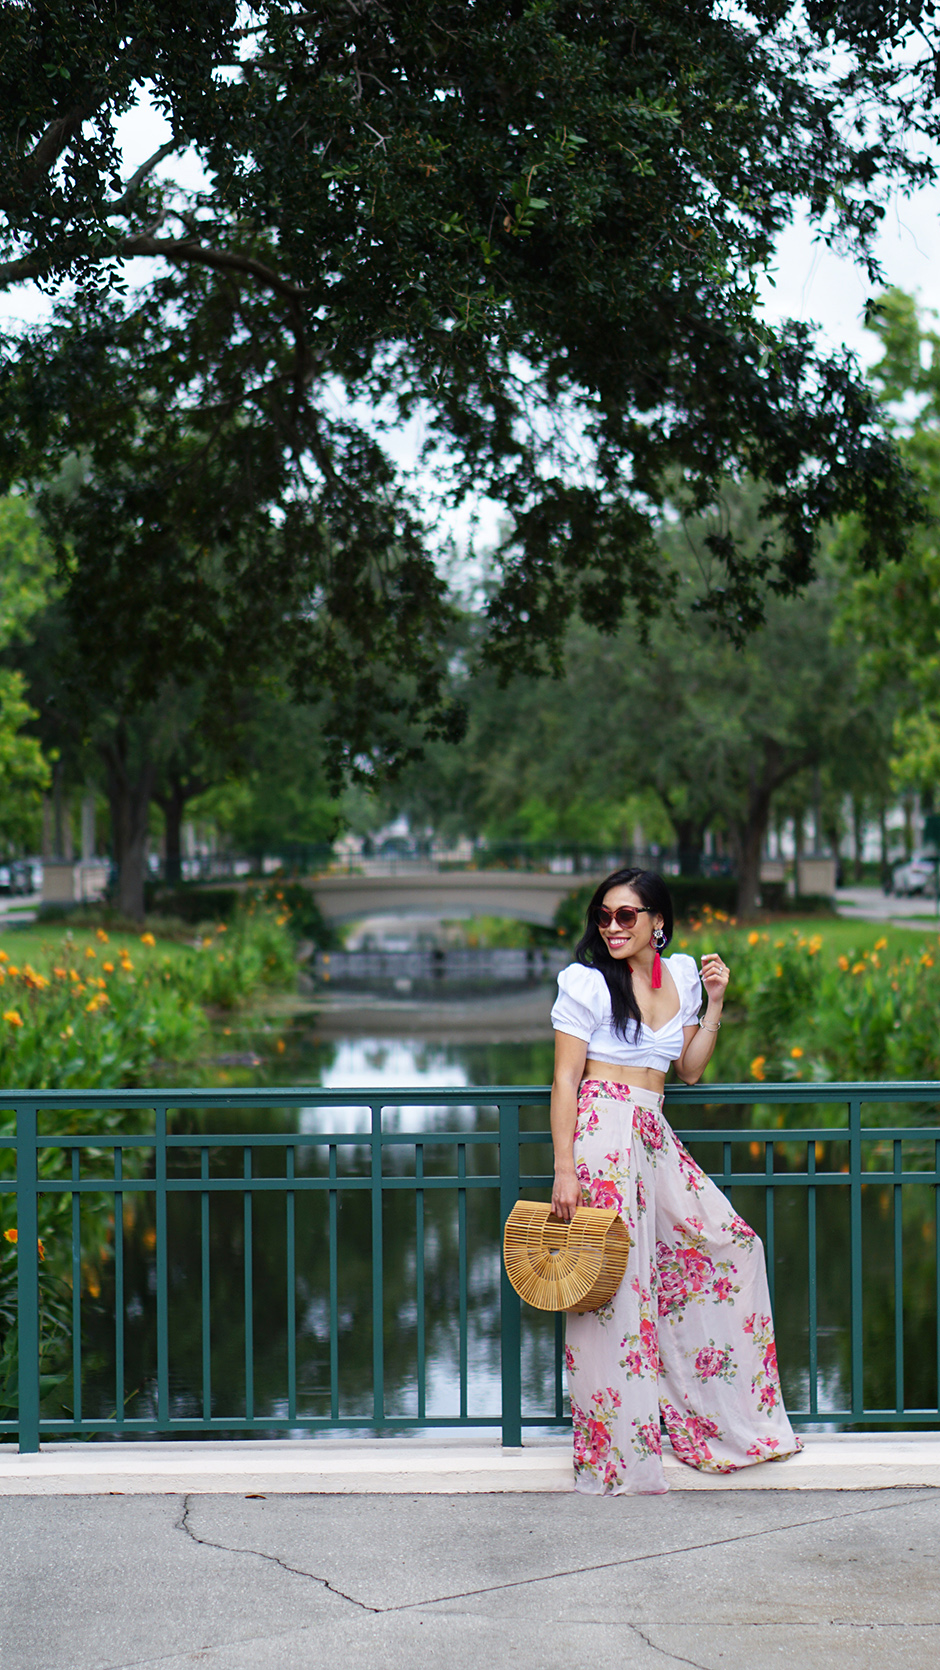 Stylish Sweetheart Square Neckline #streetstyle #outfitinspo #outfitideas #outfitideas #summerfashion #summerstyle #zimmermann #cultgaia #halfmoonbag #gucci #zara